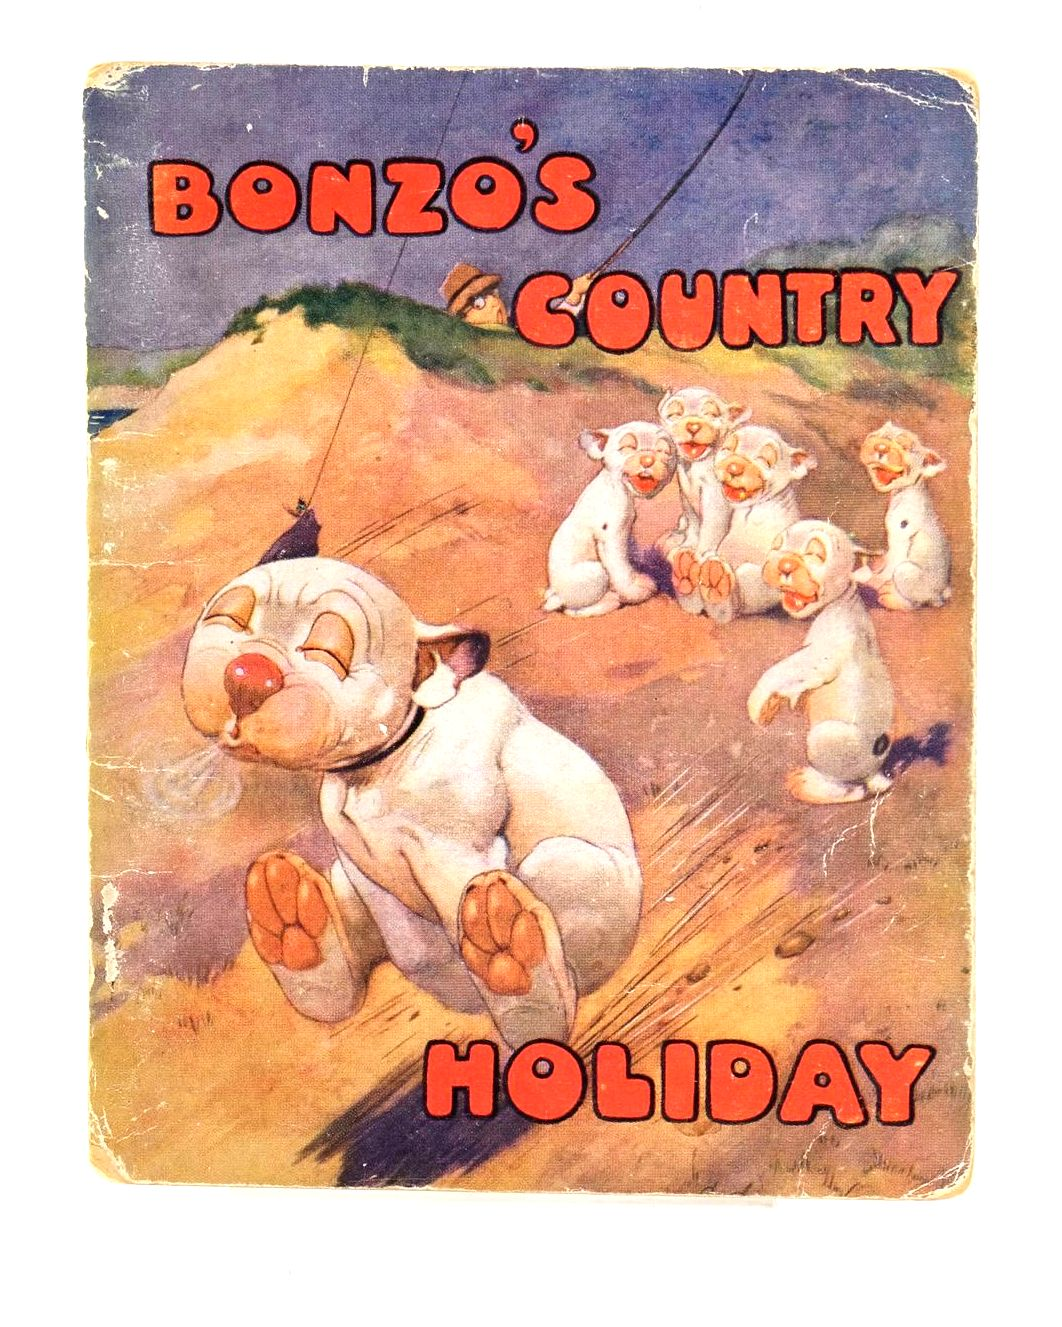 Photo of BONZO'S COUNTRY HOLIDAY written by Studdy, G.E. Jellicoe, George illustrated by Studdy, G.E. published by John Swain & Son Limited, E.P. Dutton & Co. (STOCK CODE: 1319259)  for sale by Stella & Rose's Books